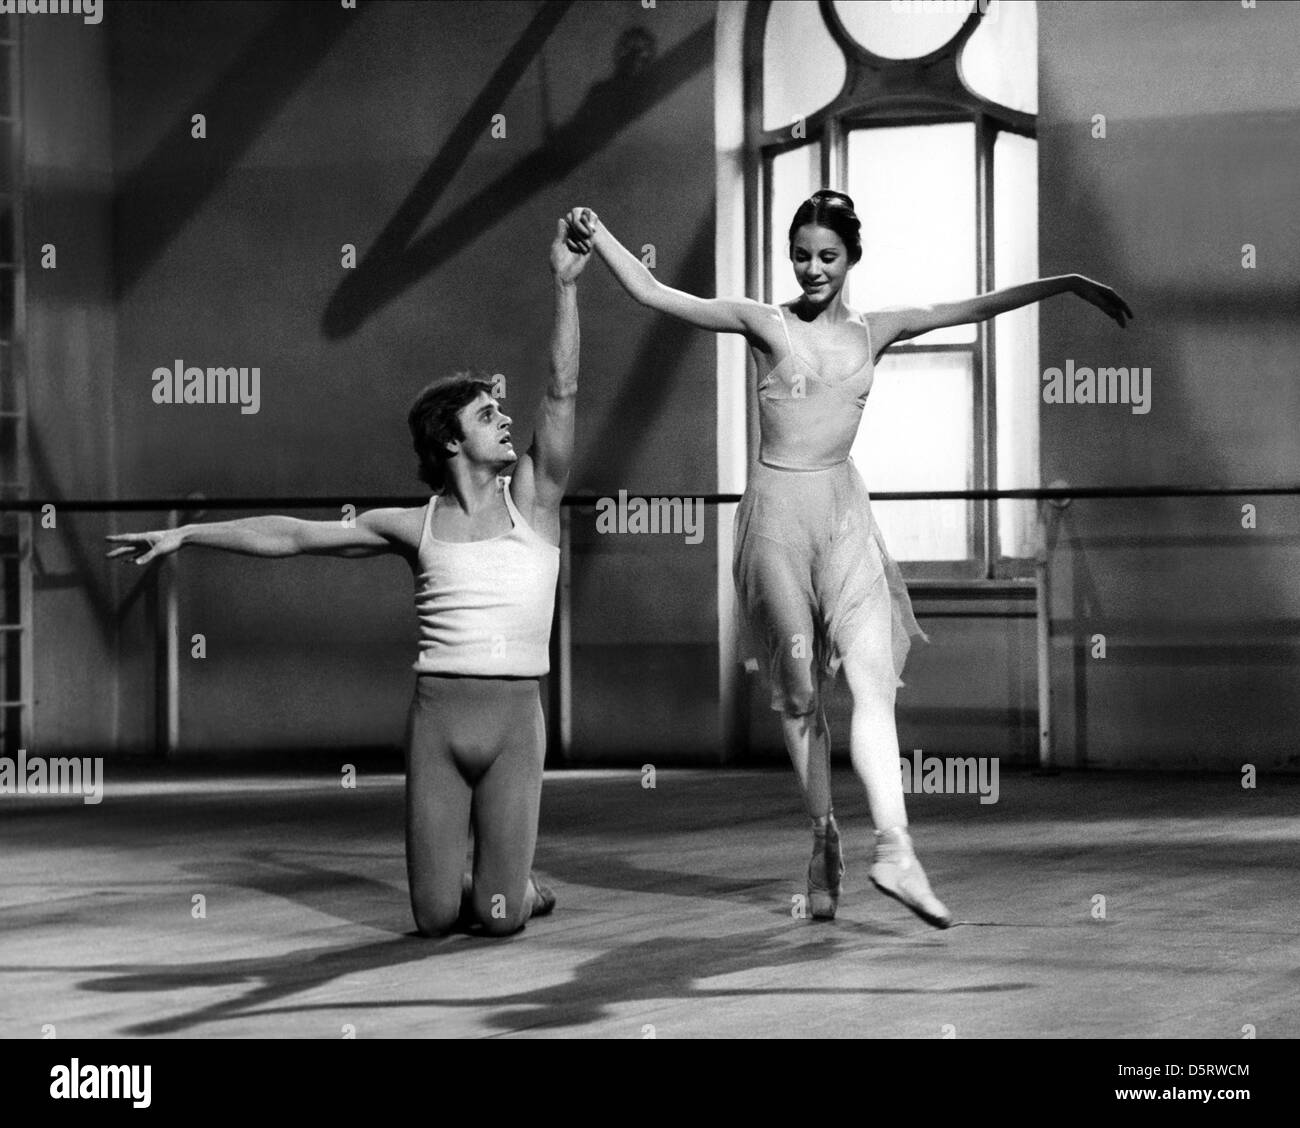 MIKHAIL BARYSHNIKOV, LESLIE BROWNE, THE TURNING POINT, 1977 - Stock Image